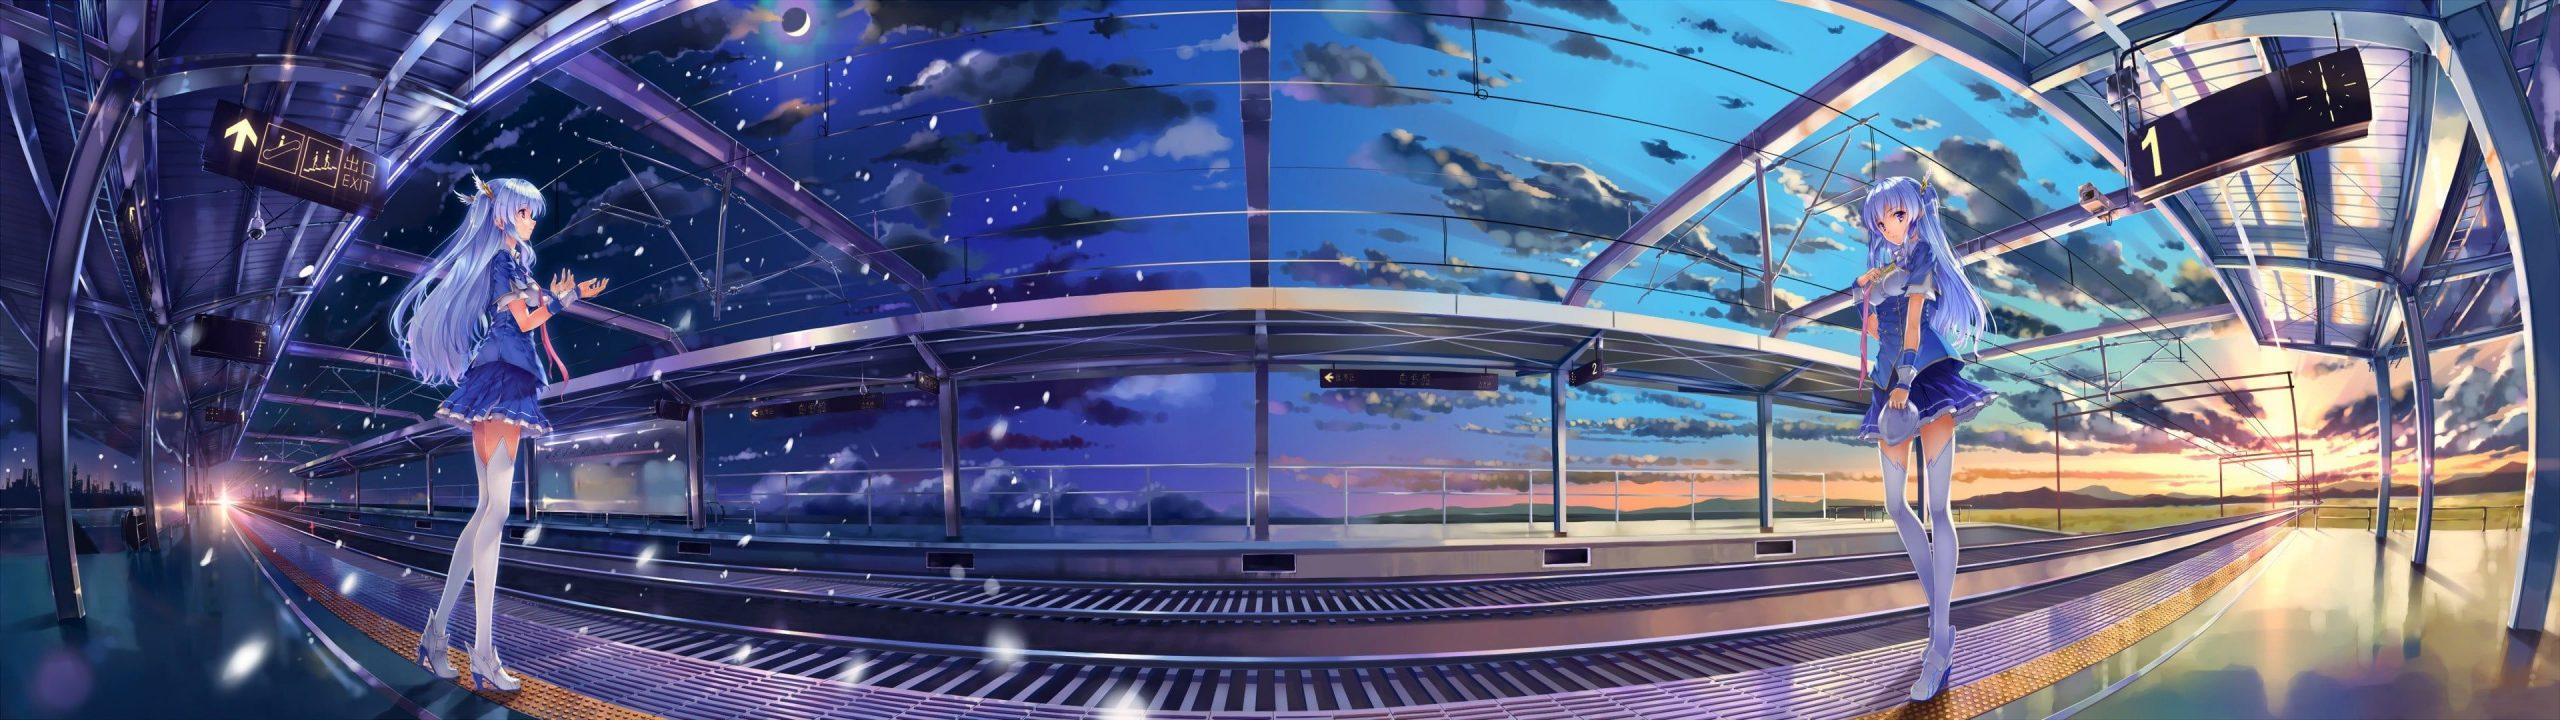 HD wallpaper blue haired female anime character sky clouds railway multiple display